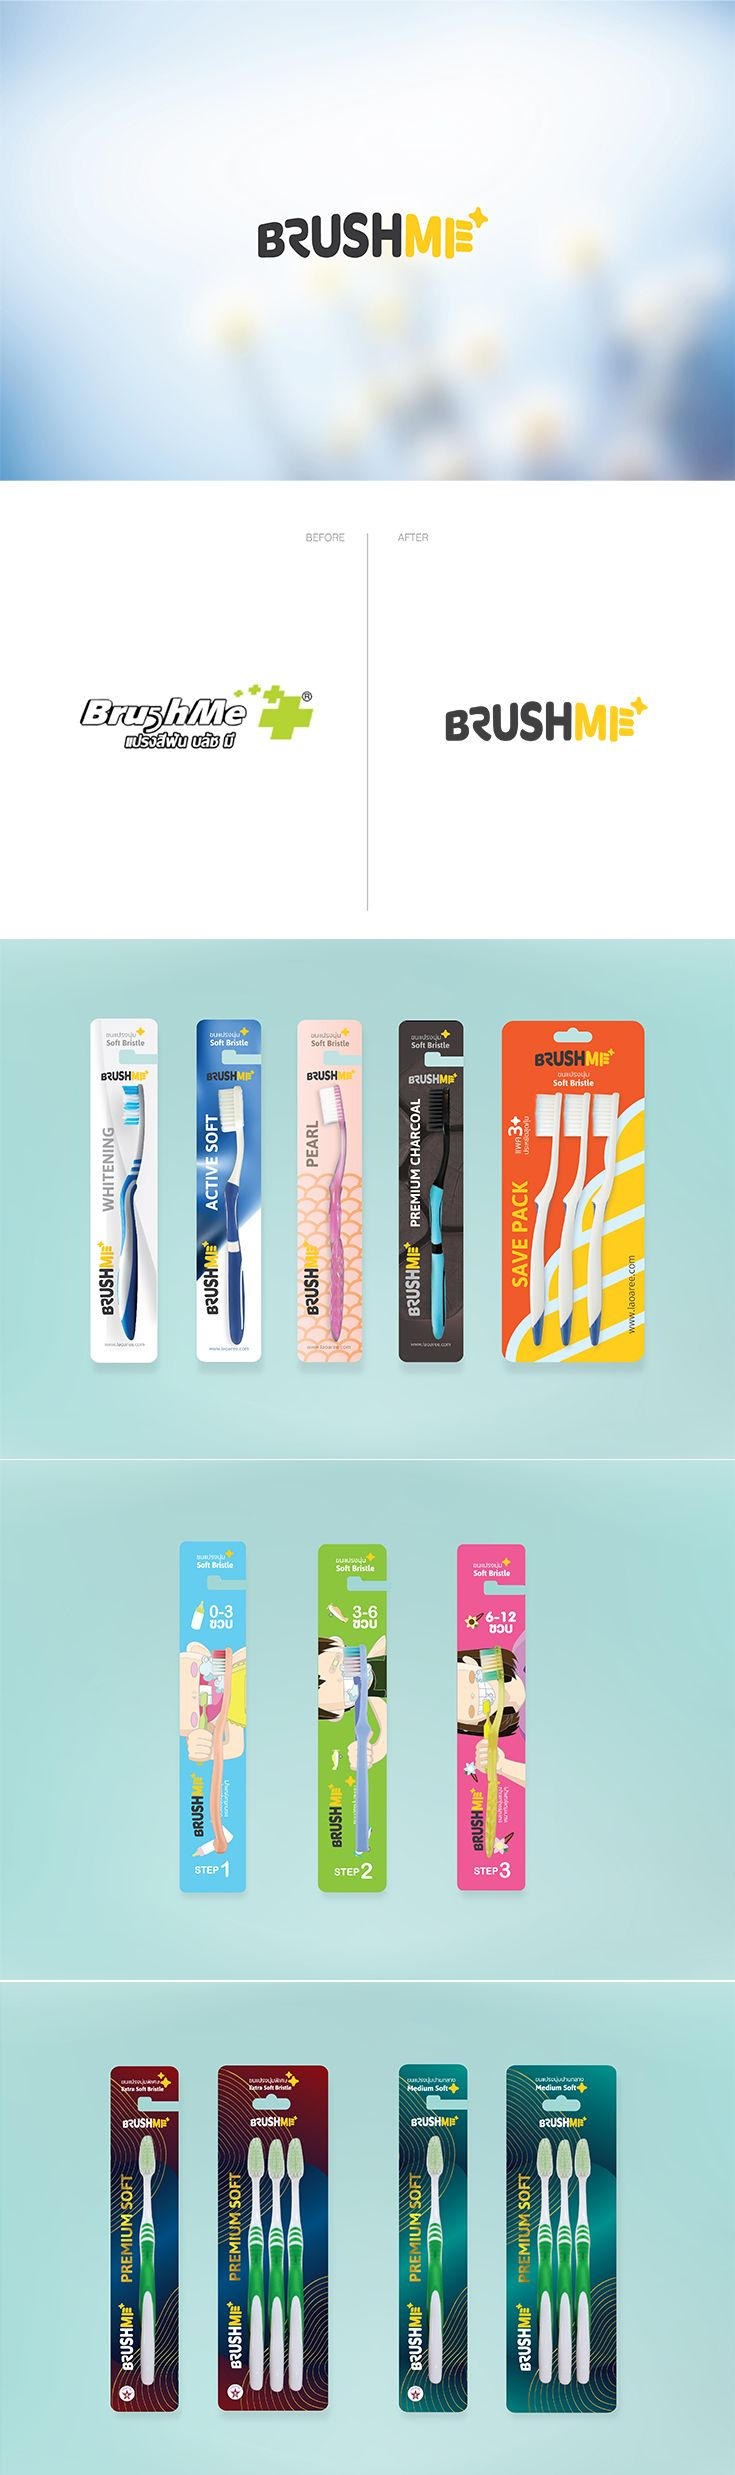 BRUSHME branding and packaging design. Make the low price toothbrush become to high image.